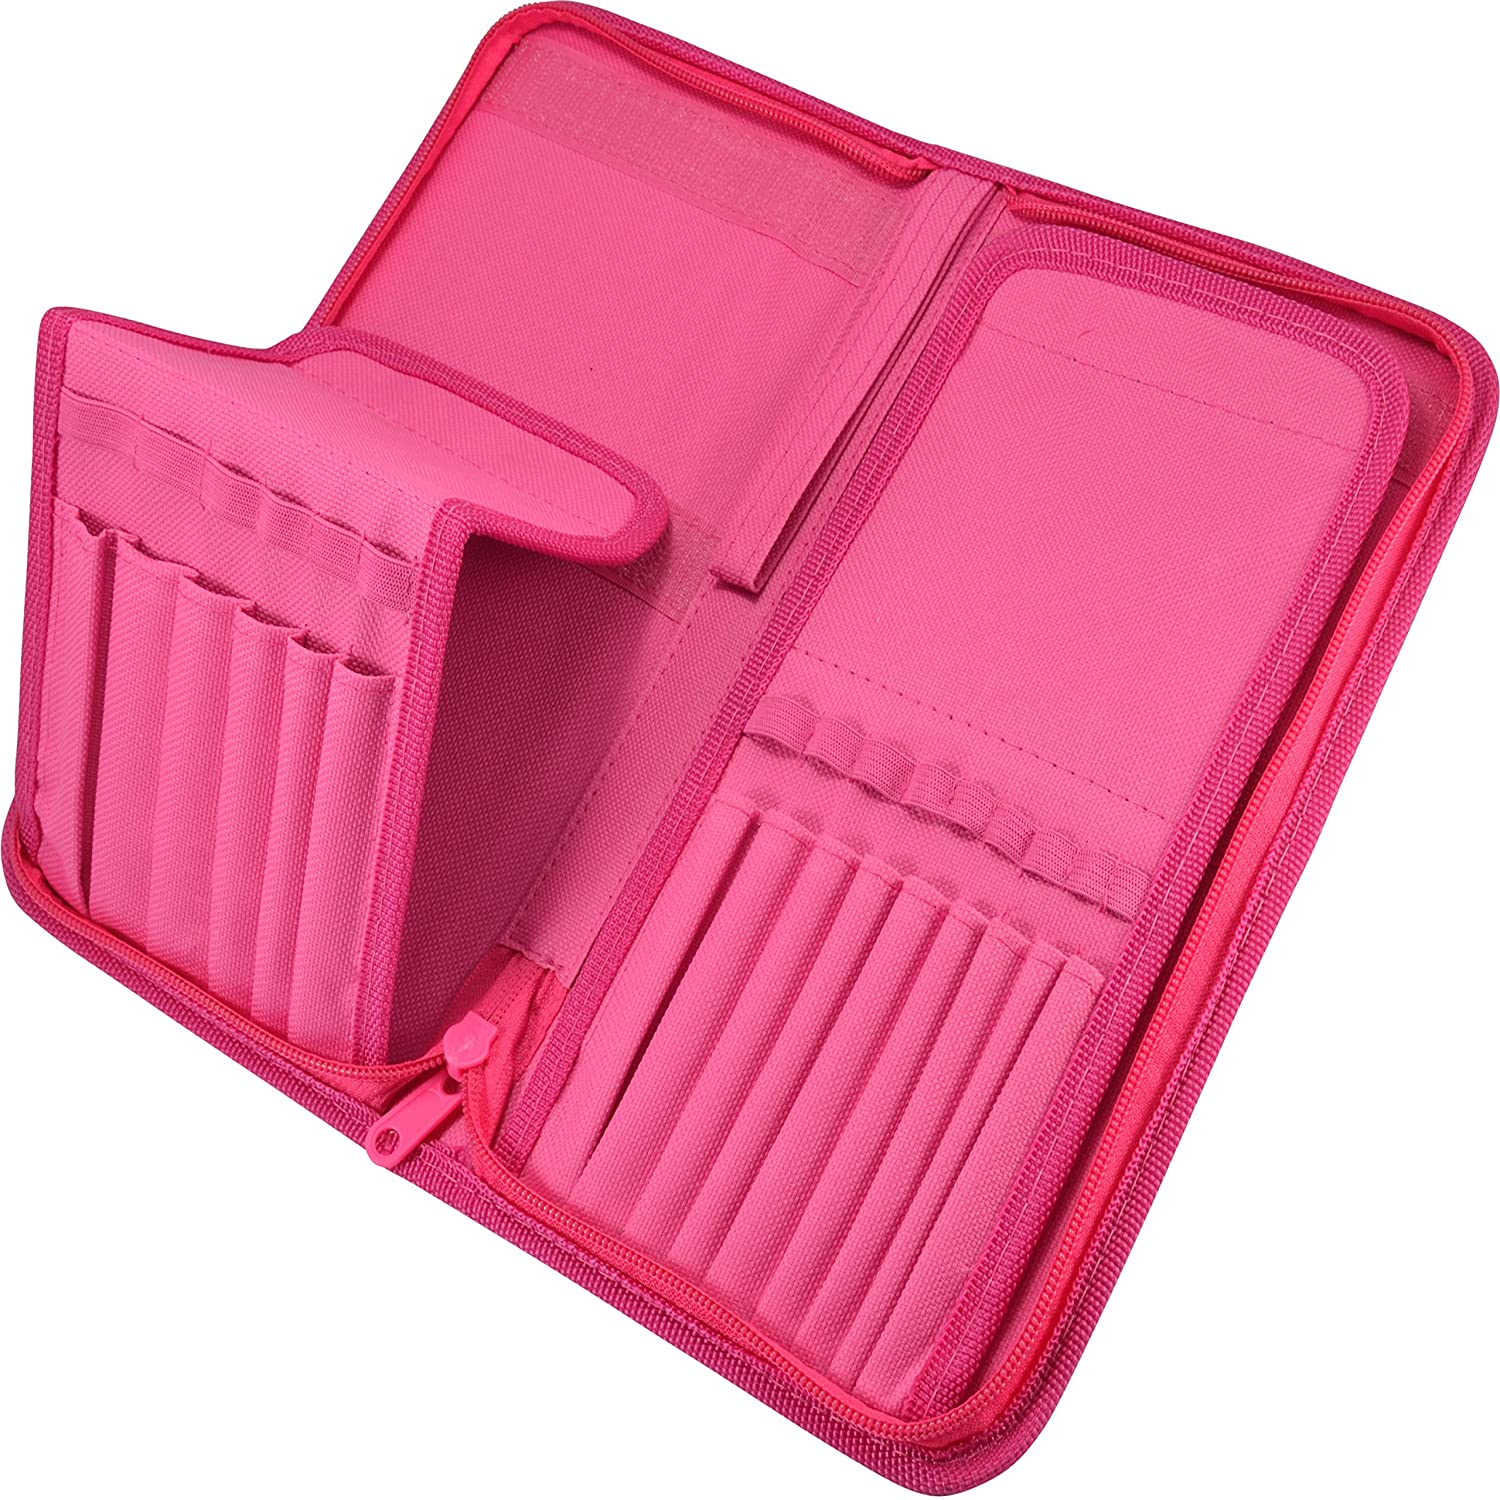 B013W6VF16 Paint Brush Holder - Organizer for 15 Short Handle Brushes - Storage for Acrylic, Oil & Watercolor Art Paintbrushes - Artists' Quality Supplies by MyArtscape™ (Hot Pink) 91j8uMPhWNL